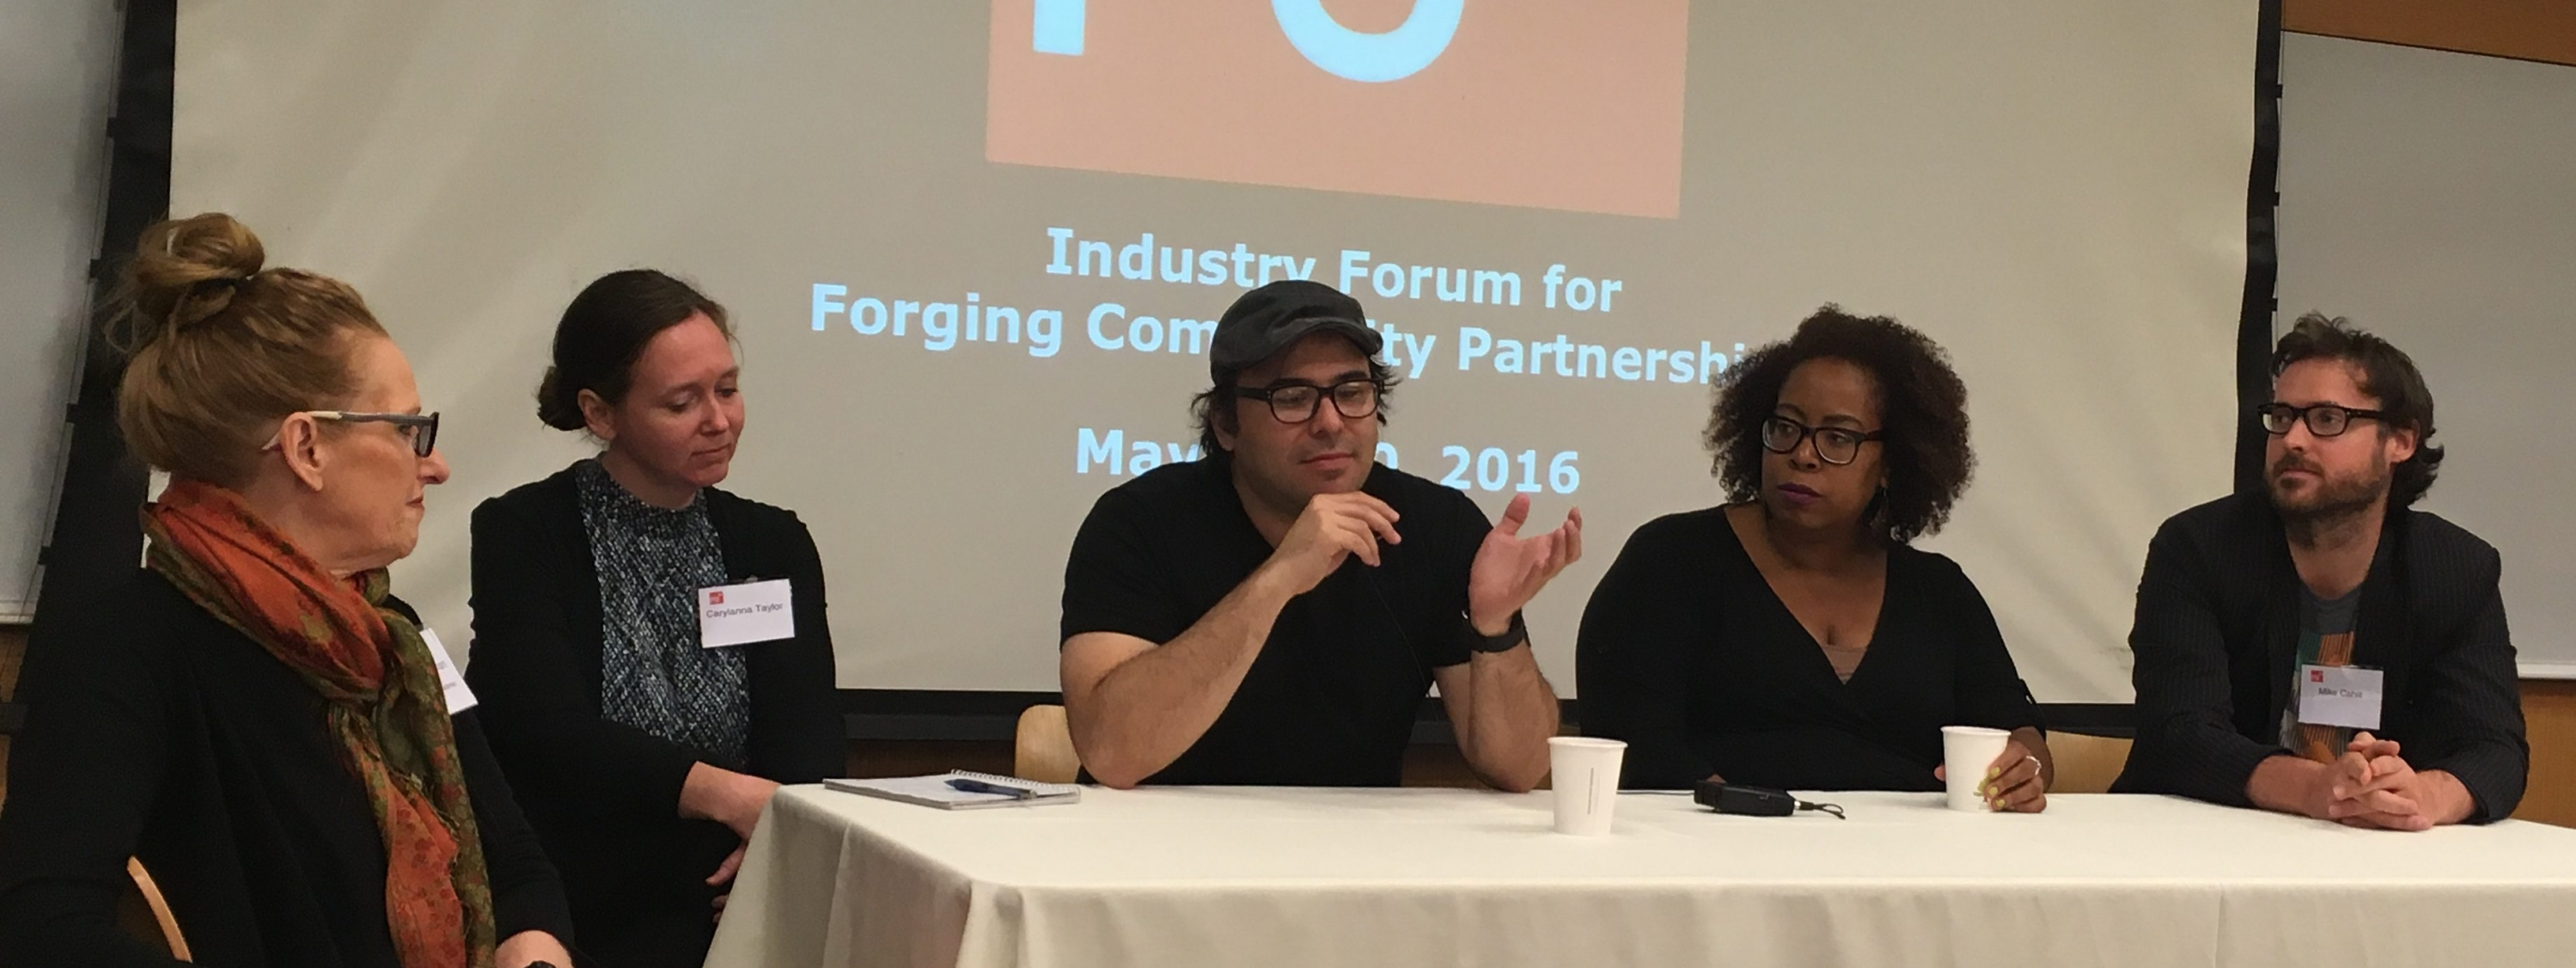 Industry Forum for Forging Community Partnerships